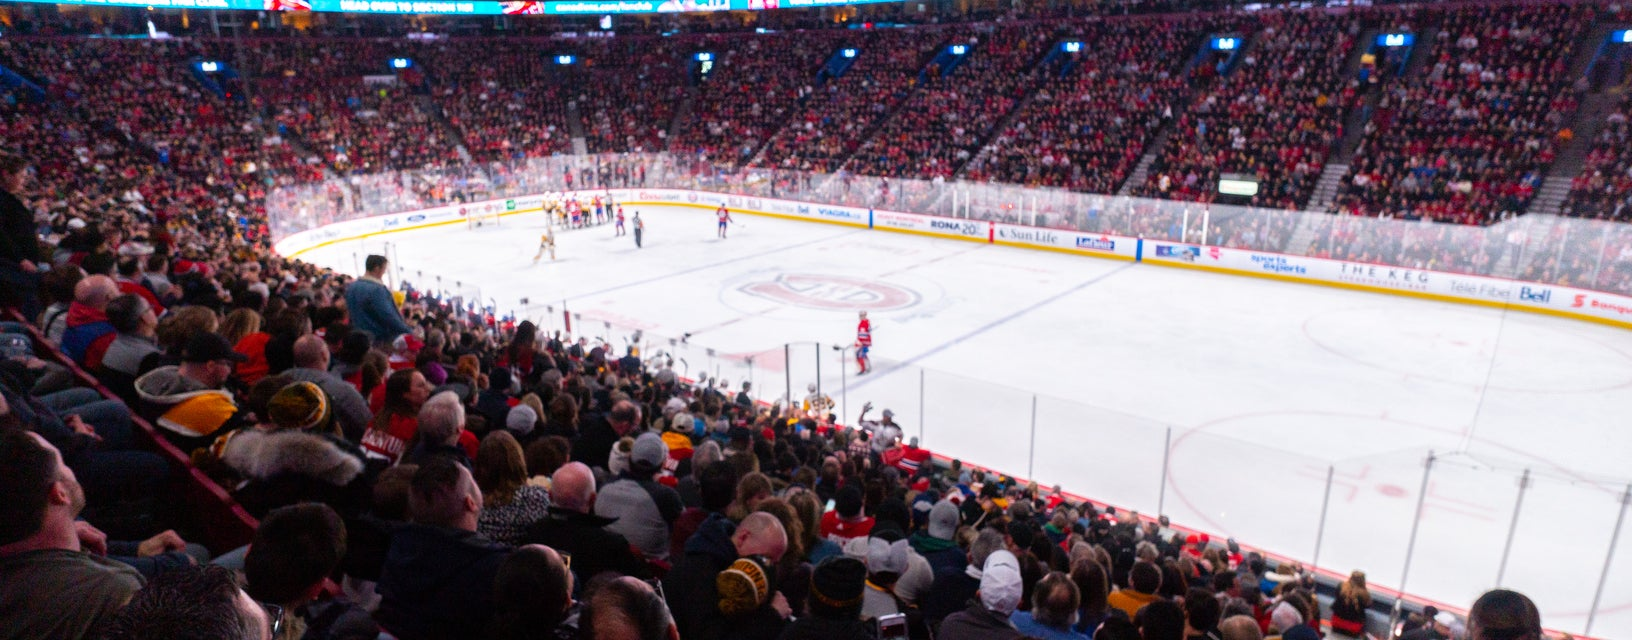 Seat view from Red Goal